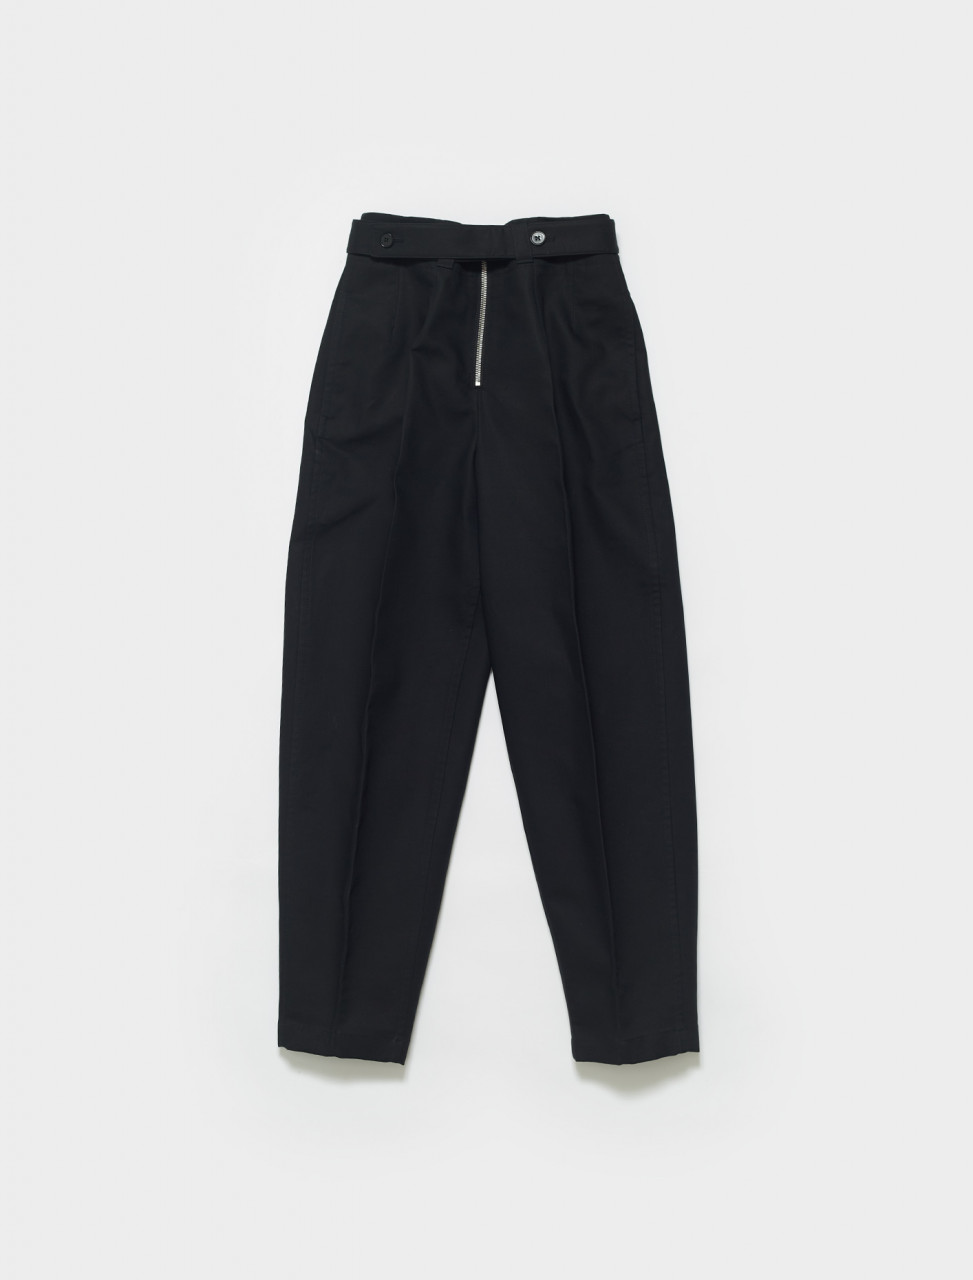 JSPS311205-WS241600-001 JIL SANDER HIGH WAISTED TROUSER BLACK